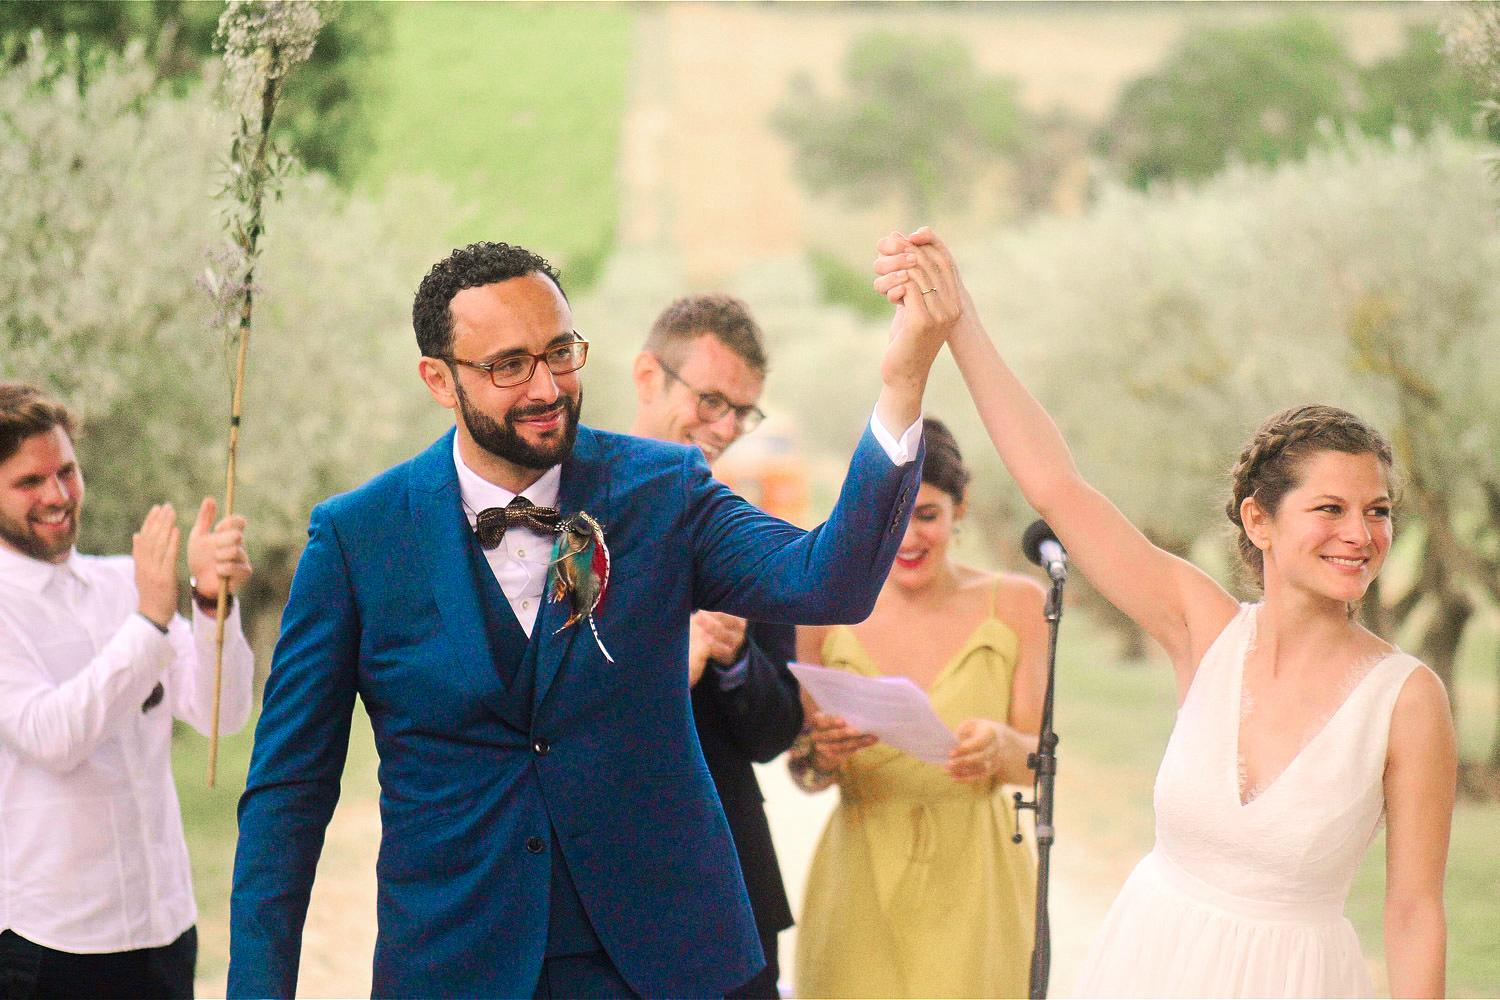 Wedded couple raise their hands in celebration during outdoor wedding ceremony